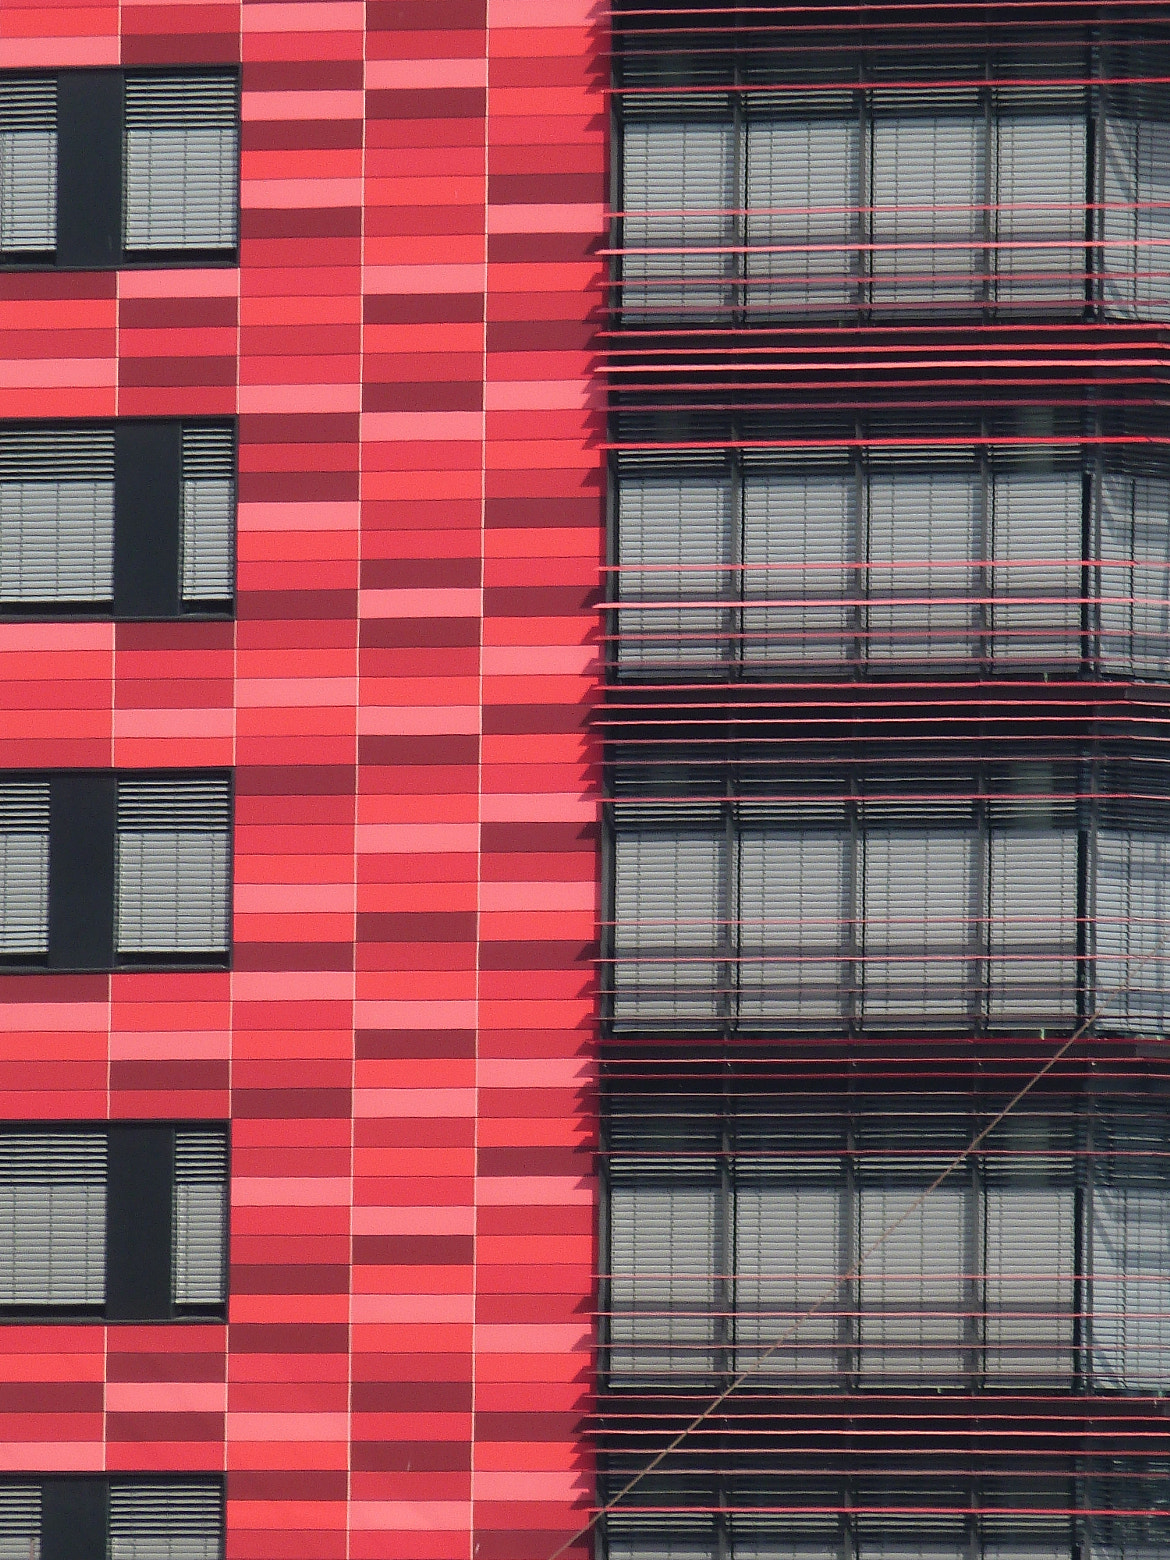 Photograph Red building by Florence Guichard on 500px